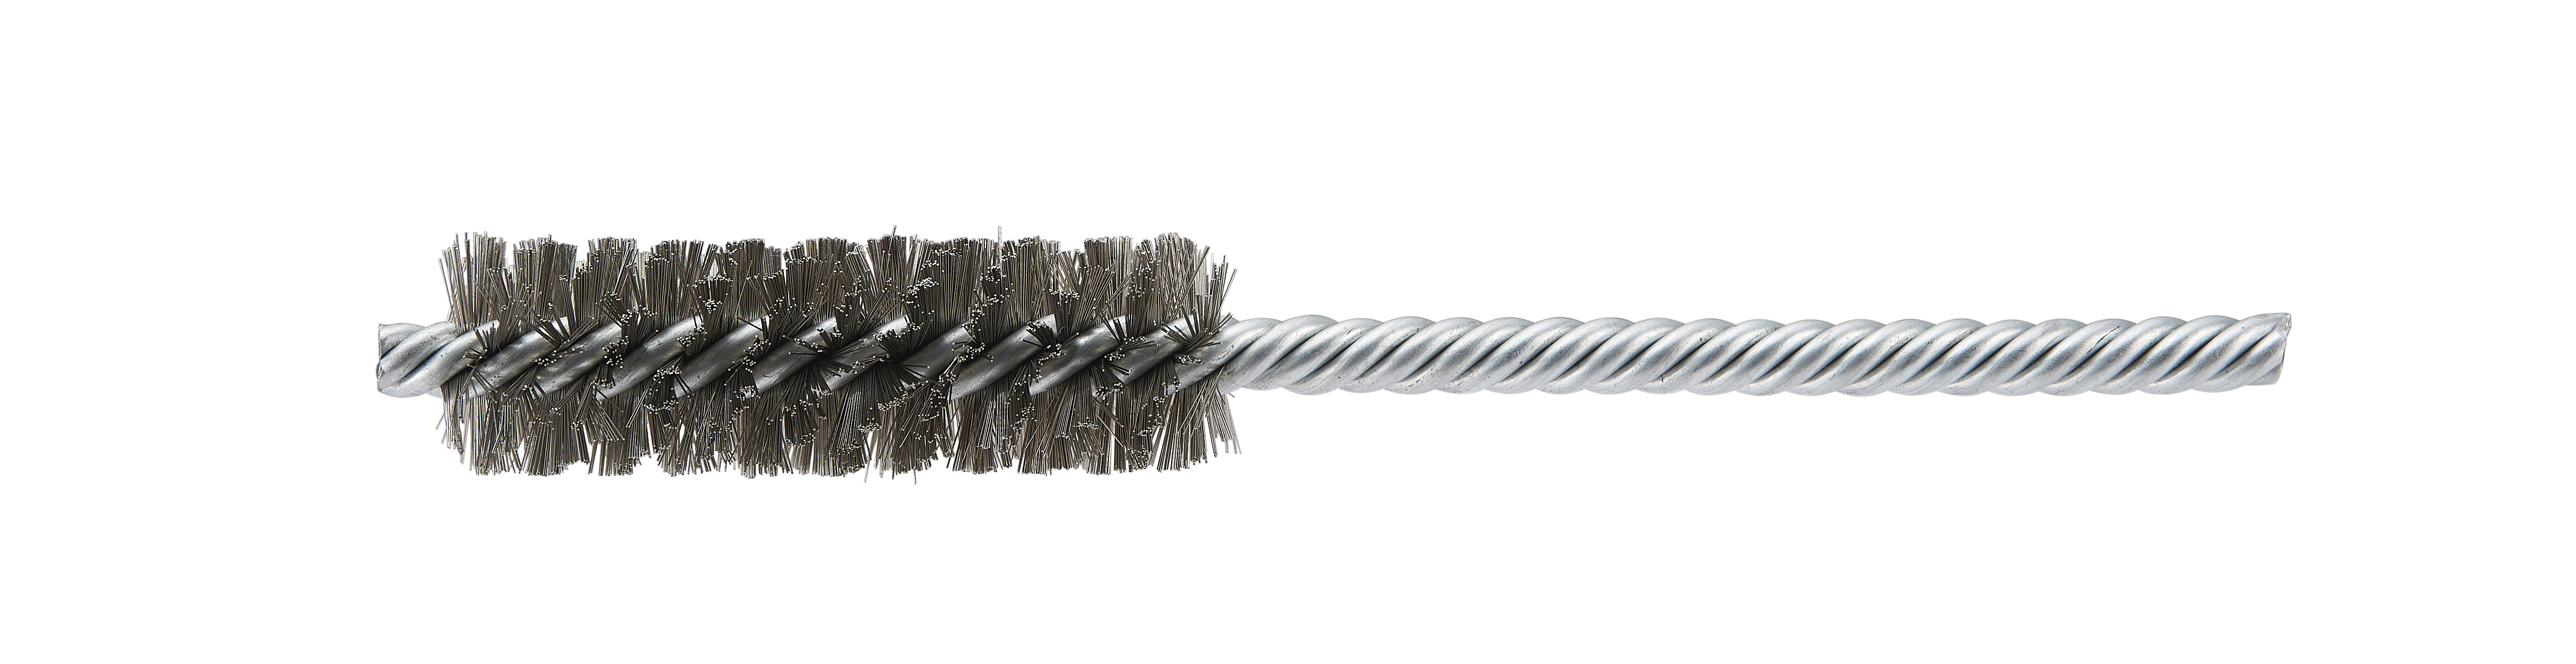 05281 Power Tube Brush